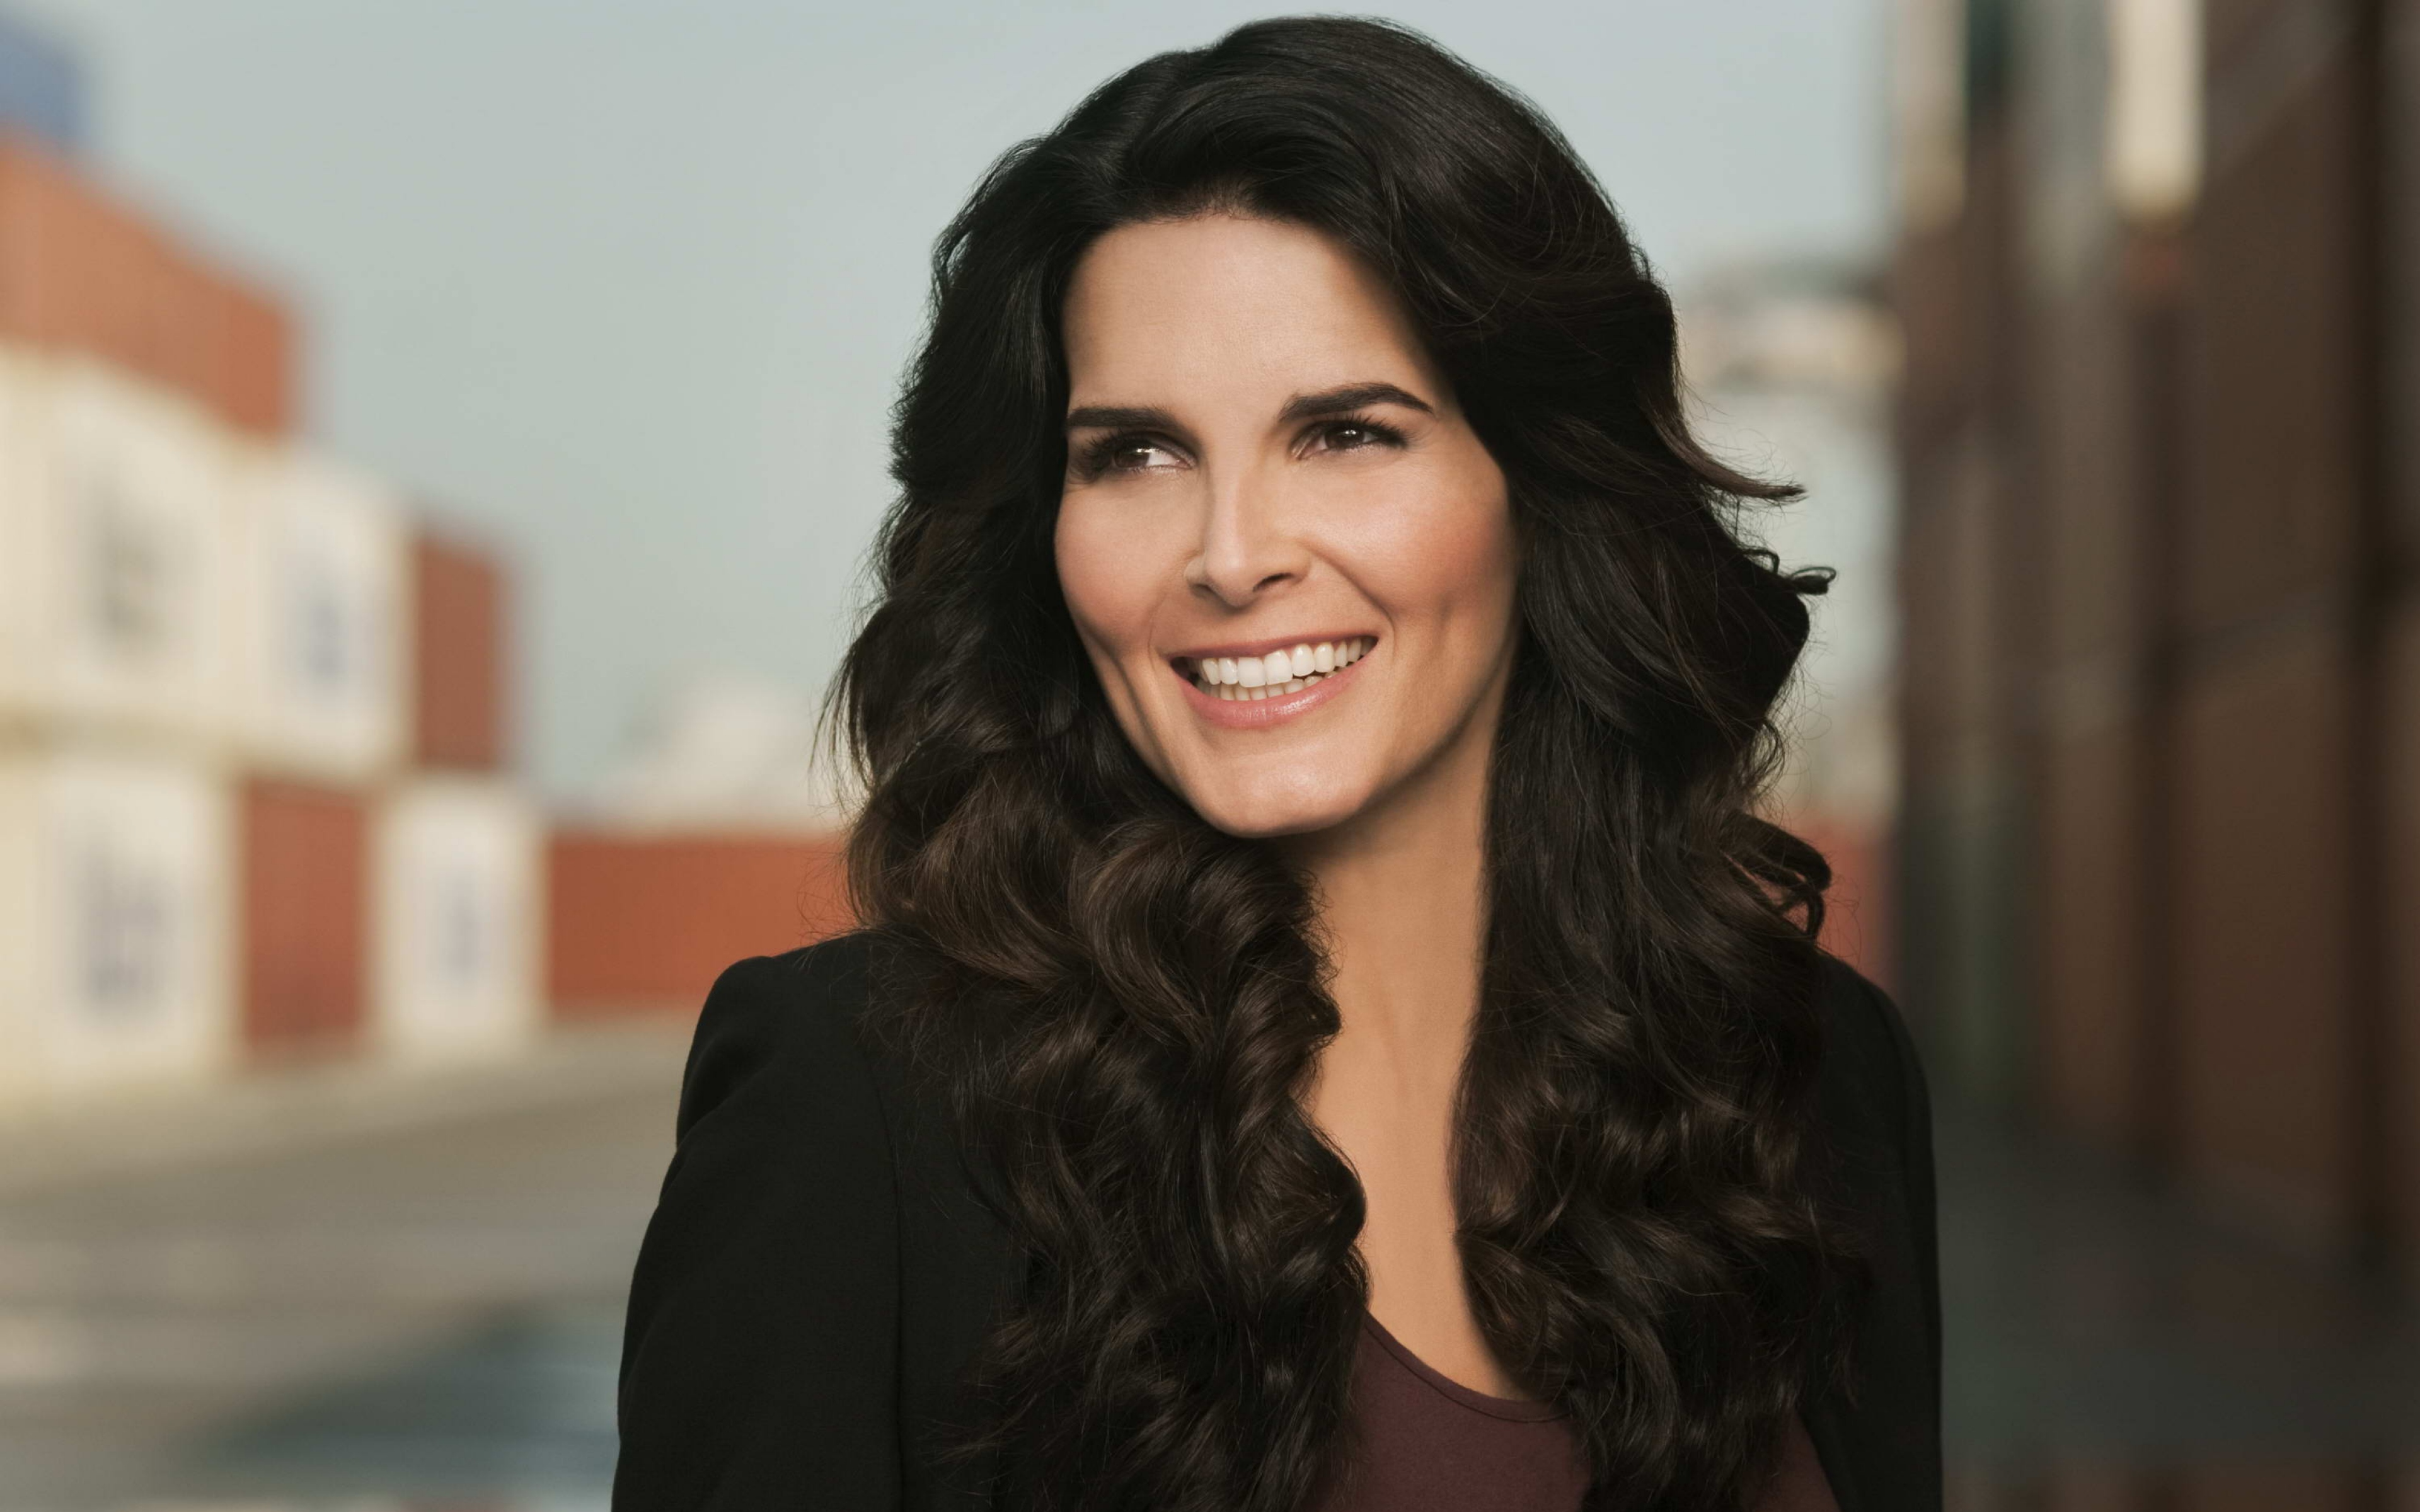 3840x2400 - Angie Harmon Wallpapers 22